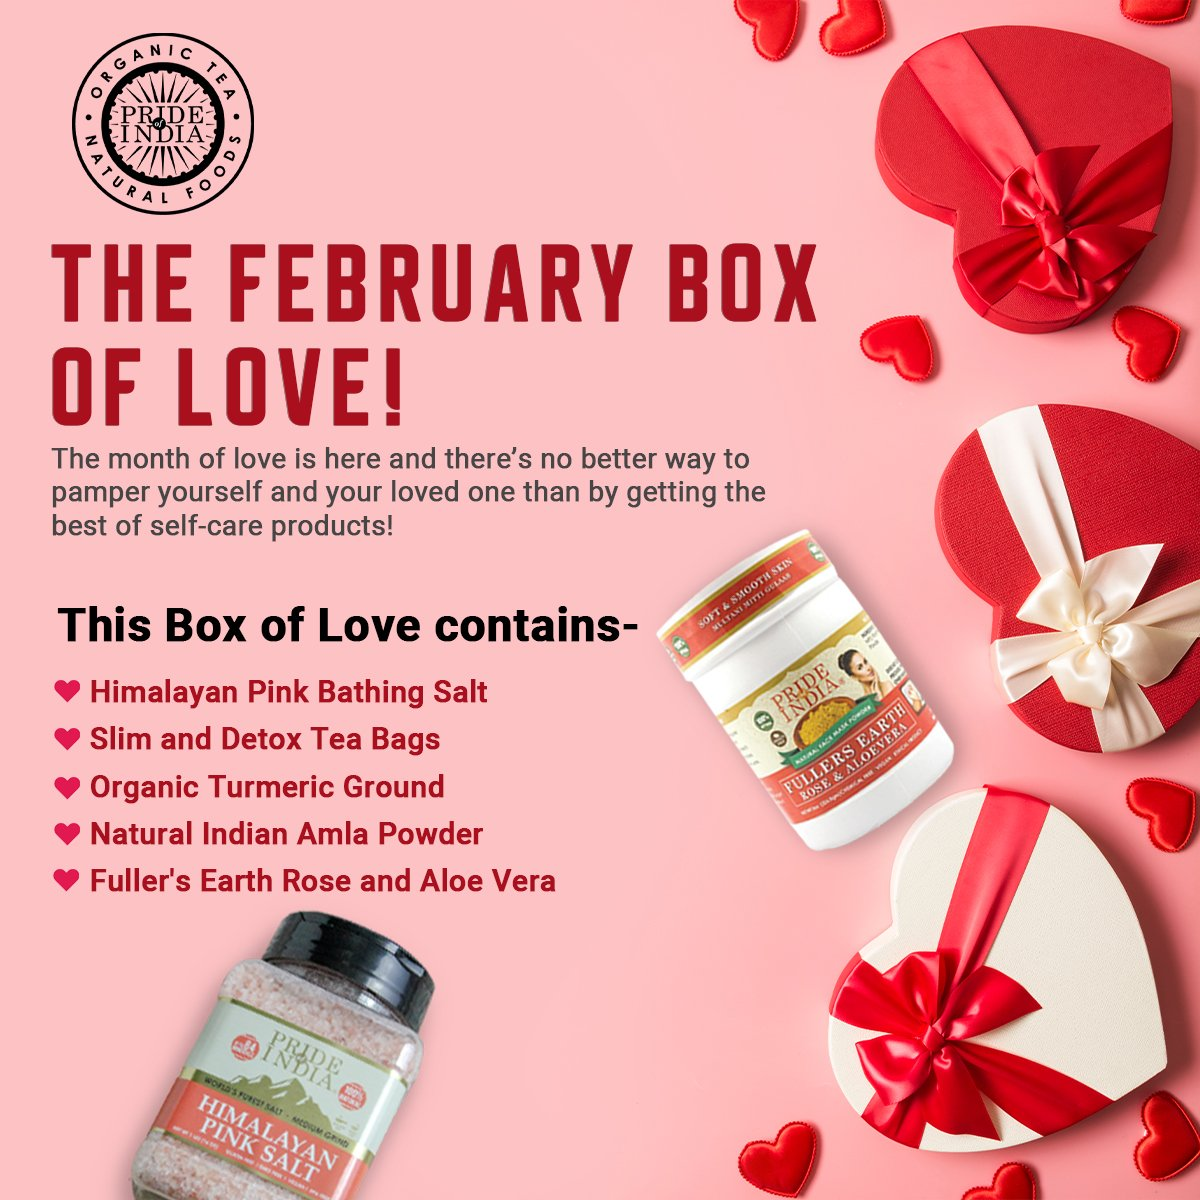 FEBRUARY BOX OF LOVE